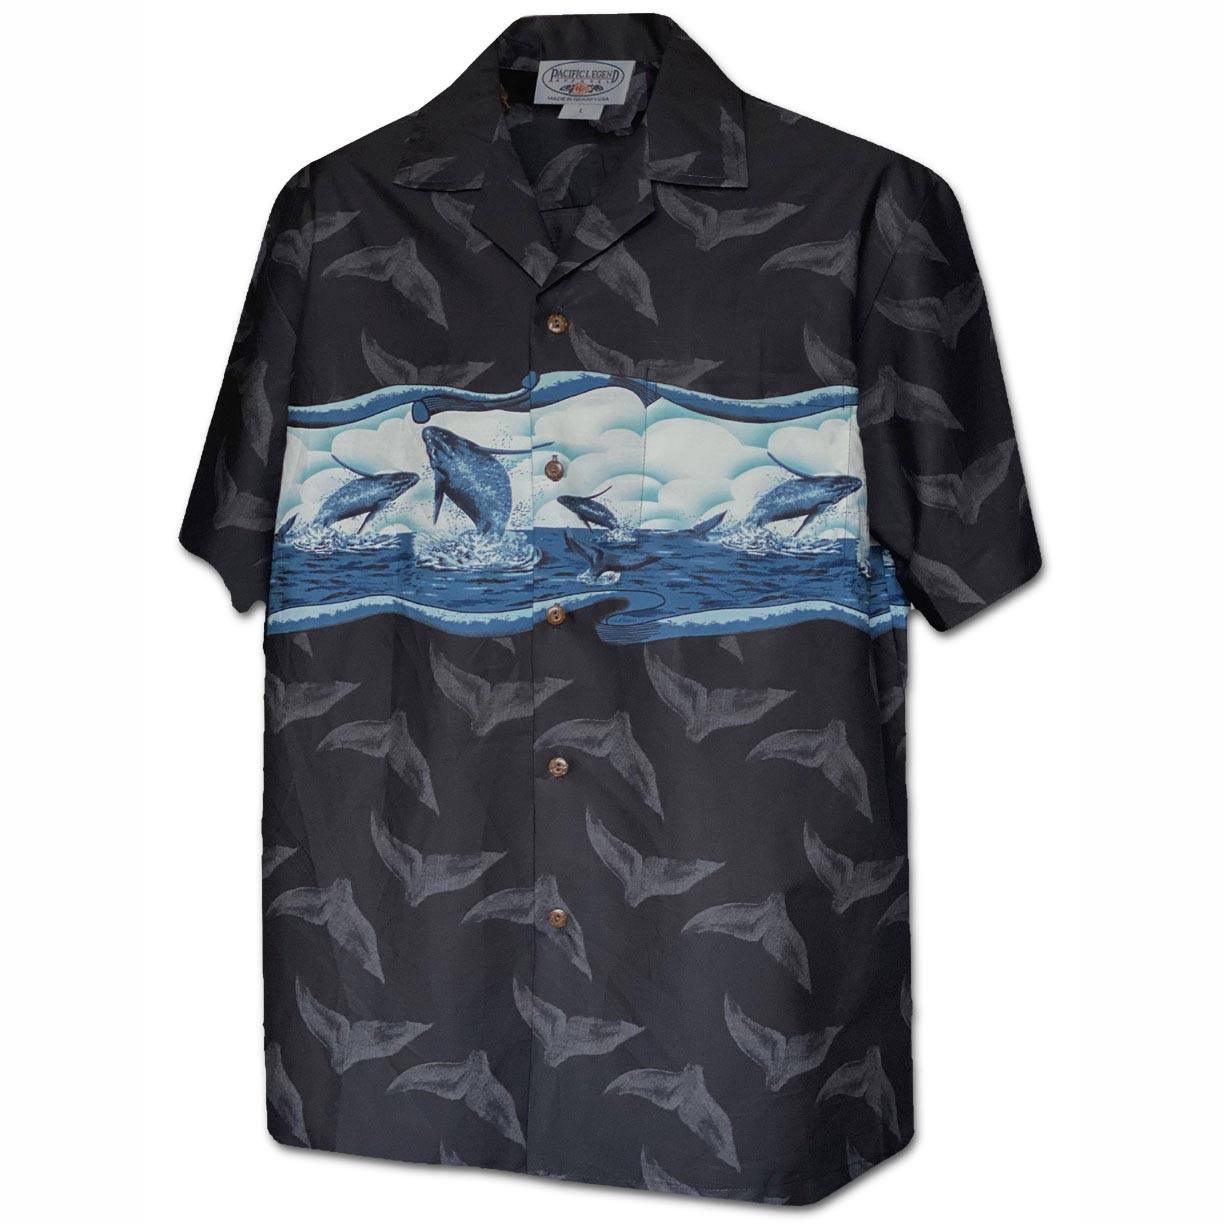 Breaching Whales Black Hawaiian Shirt